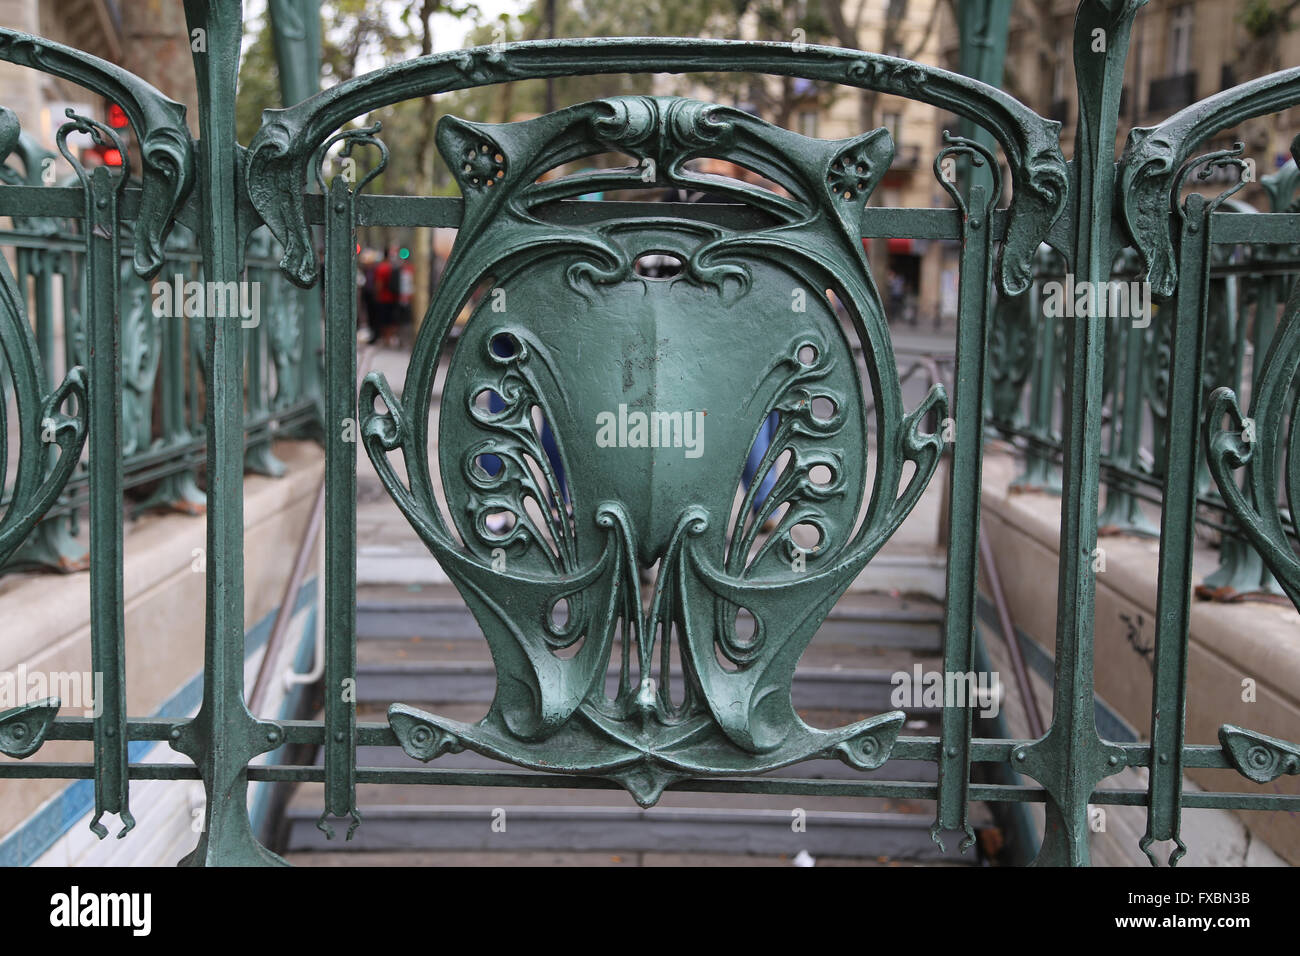 Metro station of Paris, designed by Hector Guimard (1867-1942). Art Nouveau. Paris. France. - Stock Image